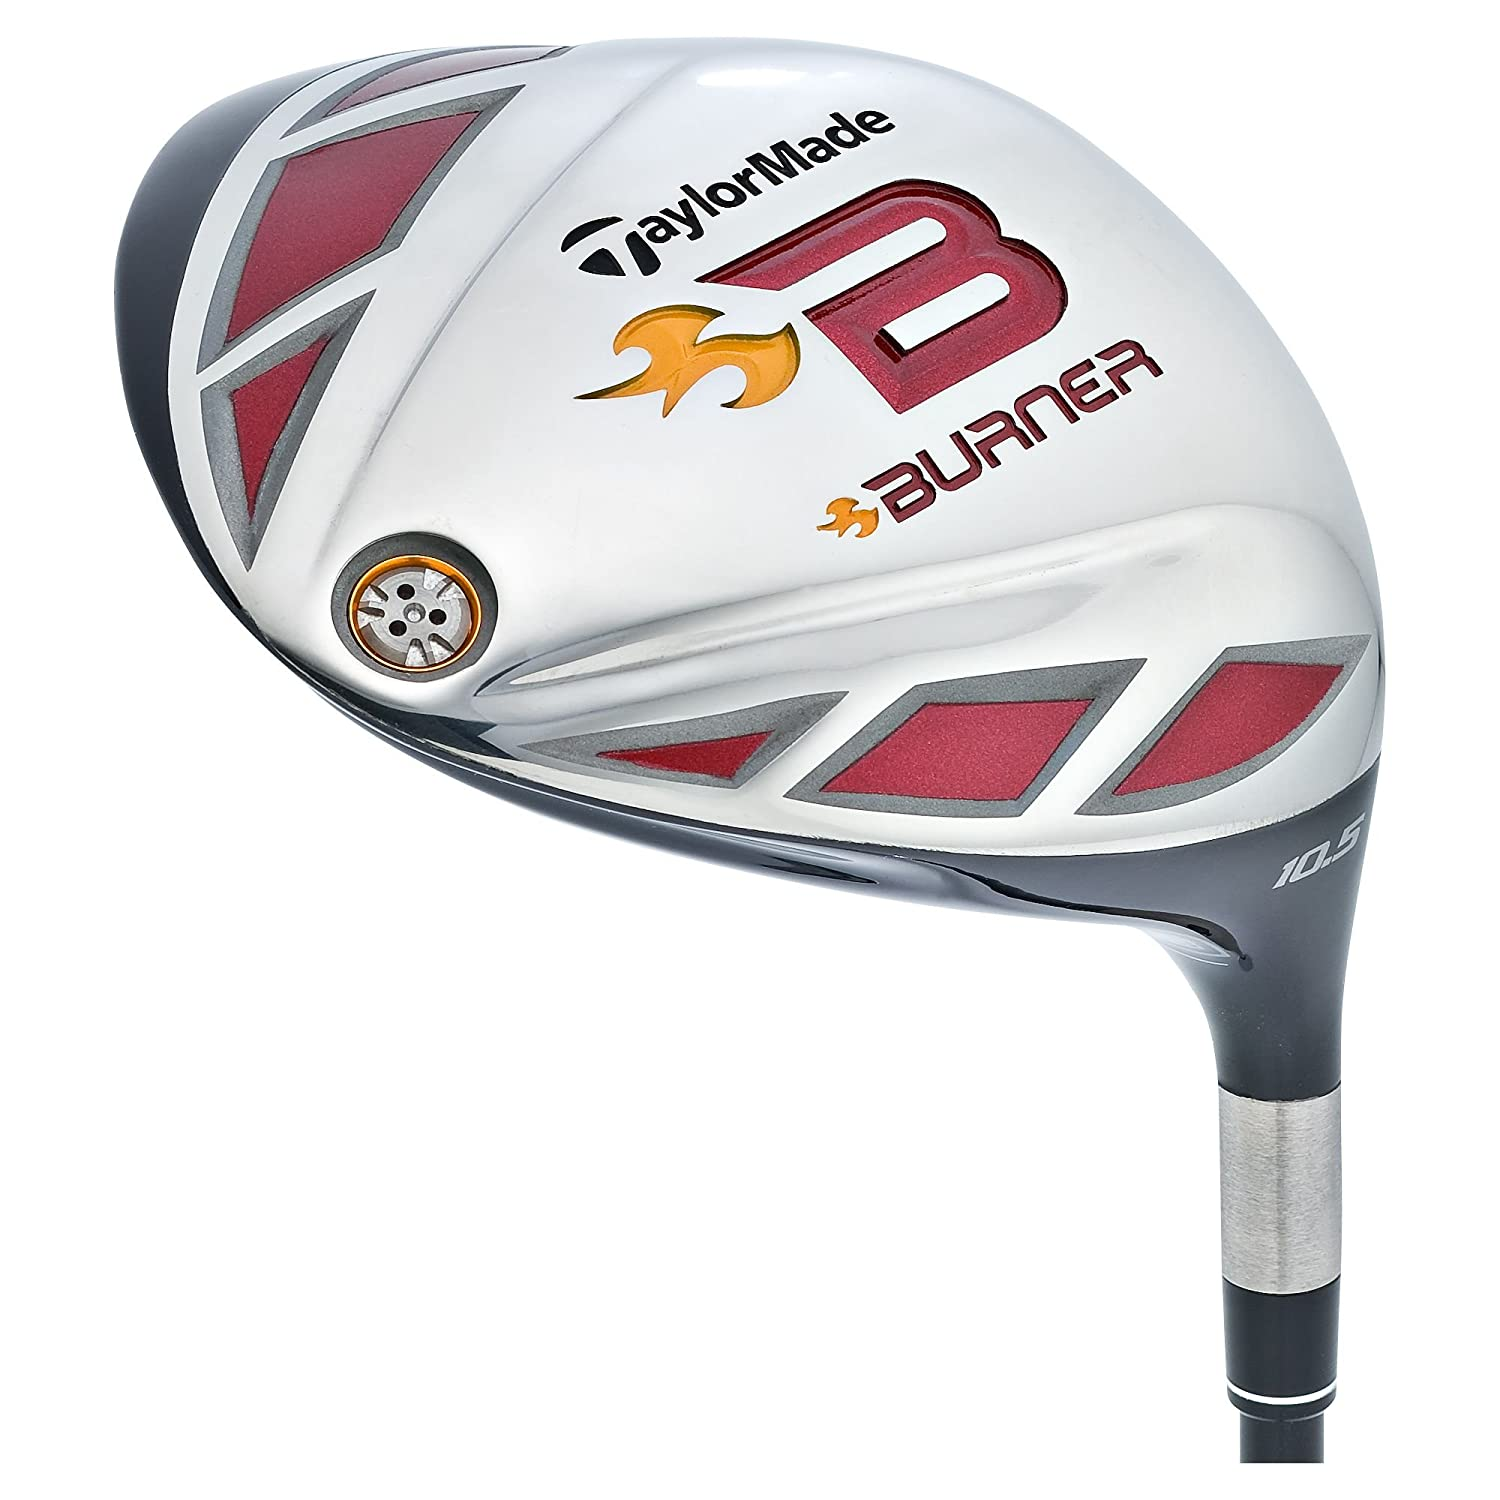 TAYLORMADE MENS BURNER 460 TI DRIVERS FOR WINDOWS 7